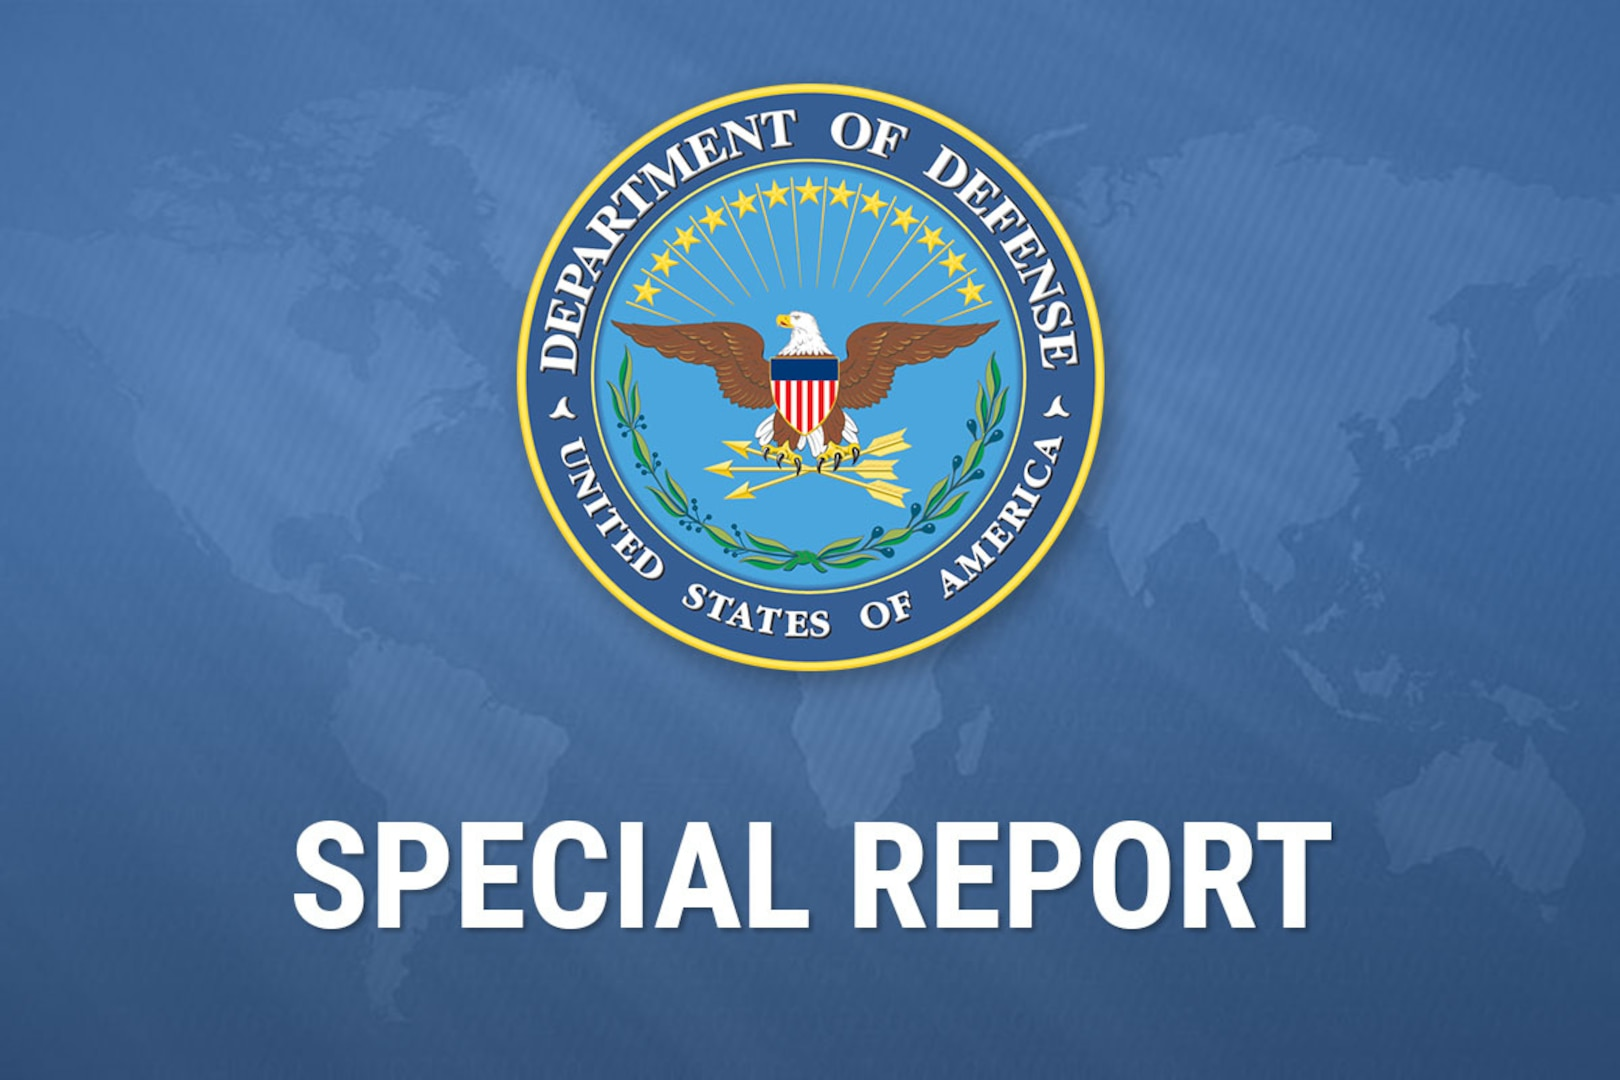 Department of Defense seal on a blue background.